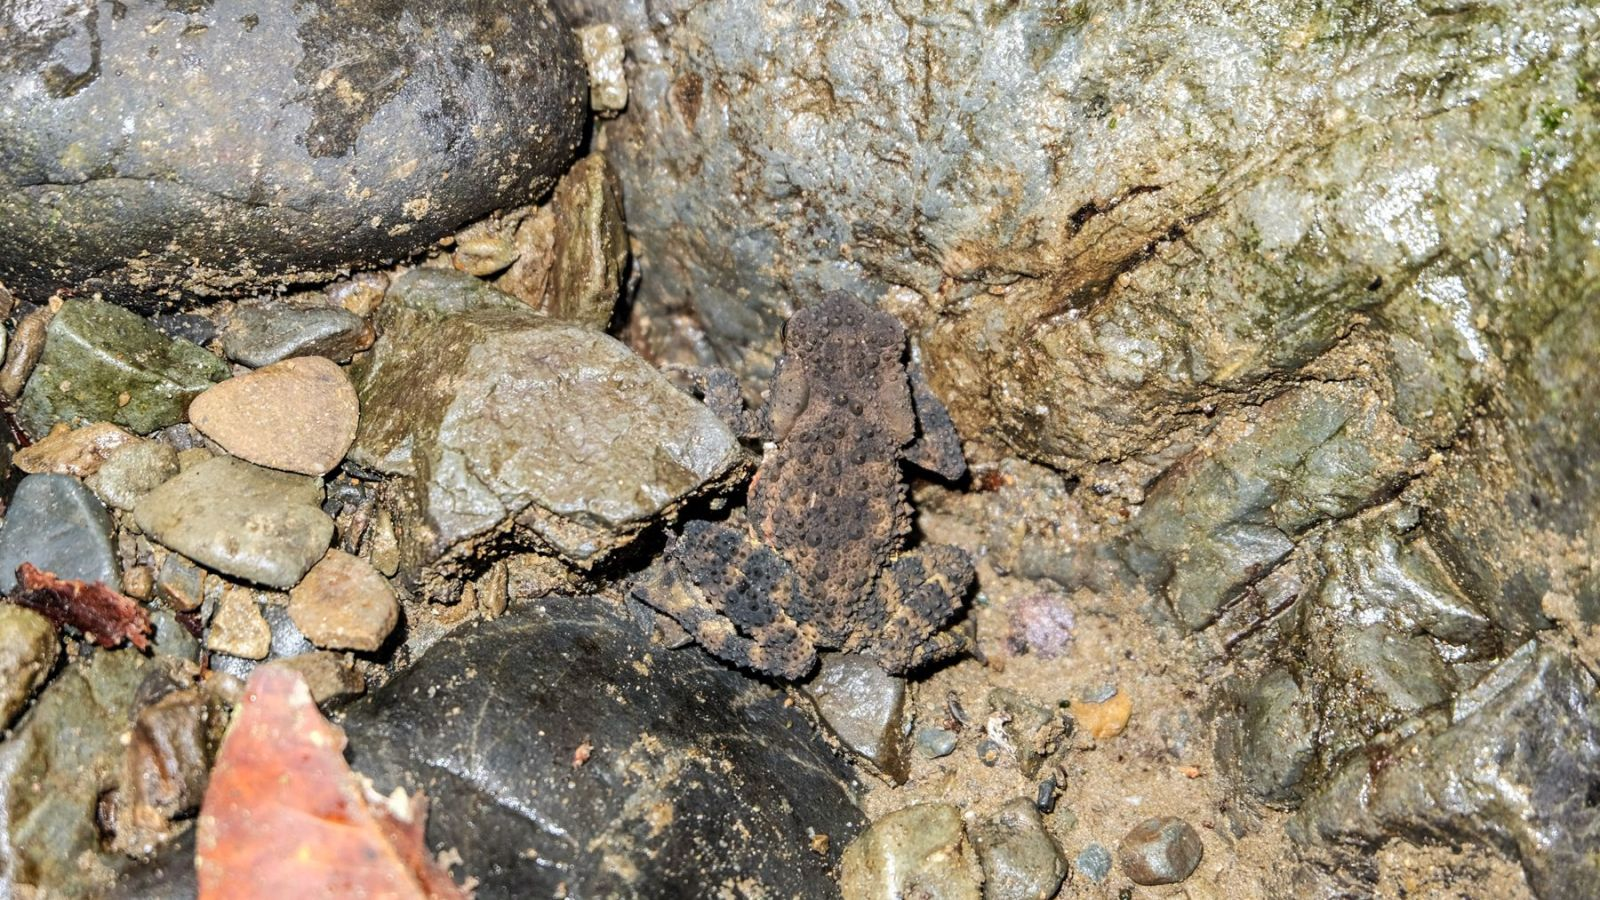 a photo of a toad in gunung leuser national park, sumatra.